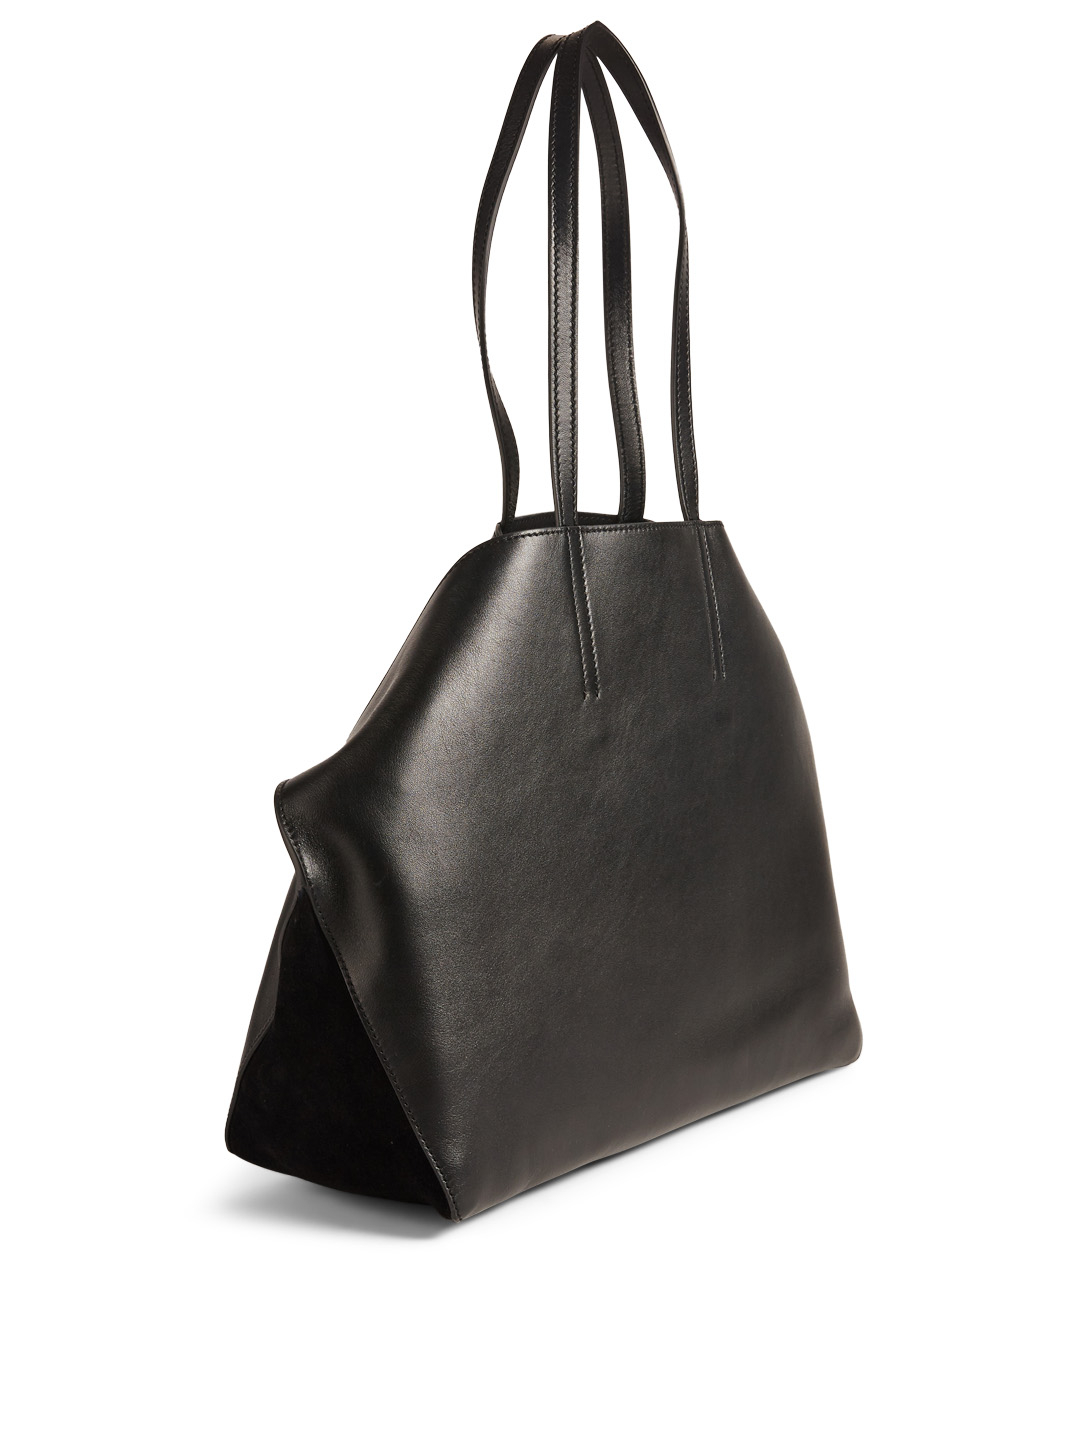 ALEXANDER MCQUEEN Butterfly Leather Tote Bag Women's Black